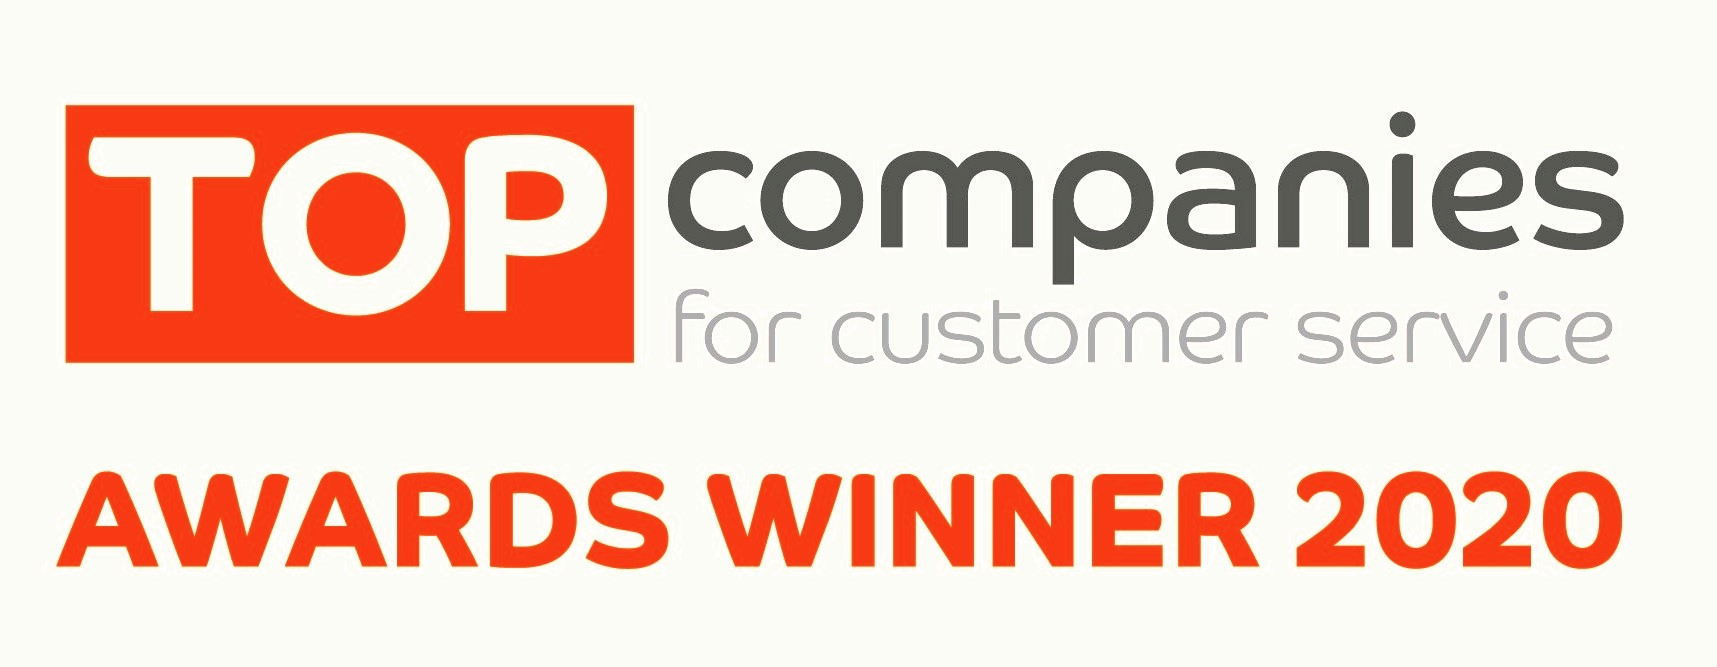 Winners at Top Companies for Customer Service